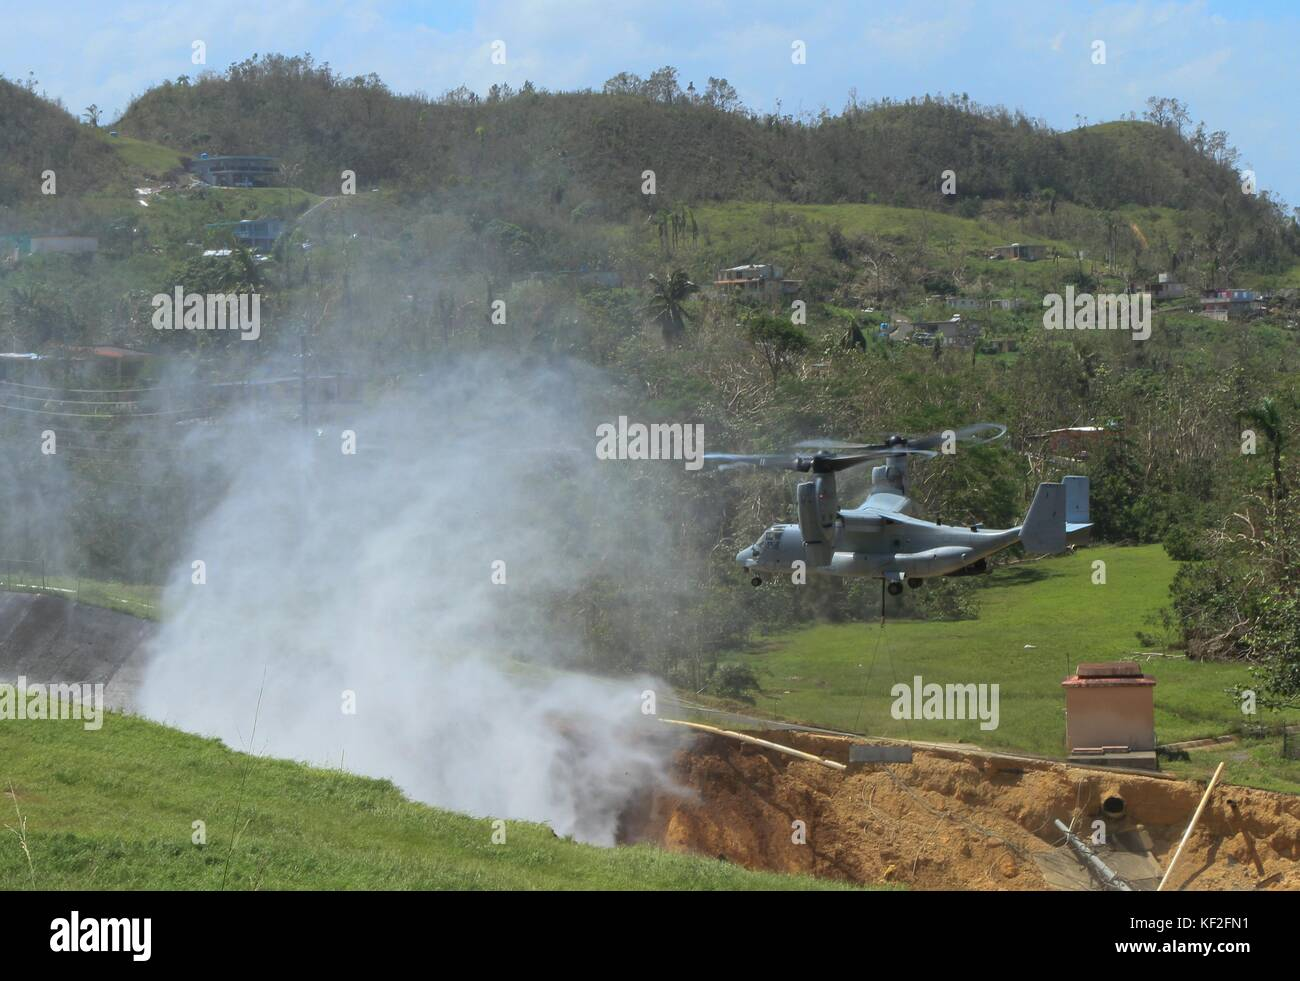 U.S. Marines in a V-22 Osprey aircraft place concrete barriers around the Guajataca Dam as they work to rebuild - Stock Image